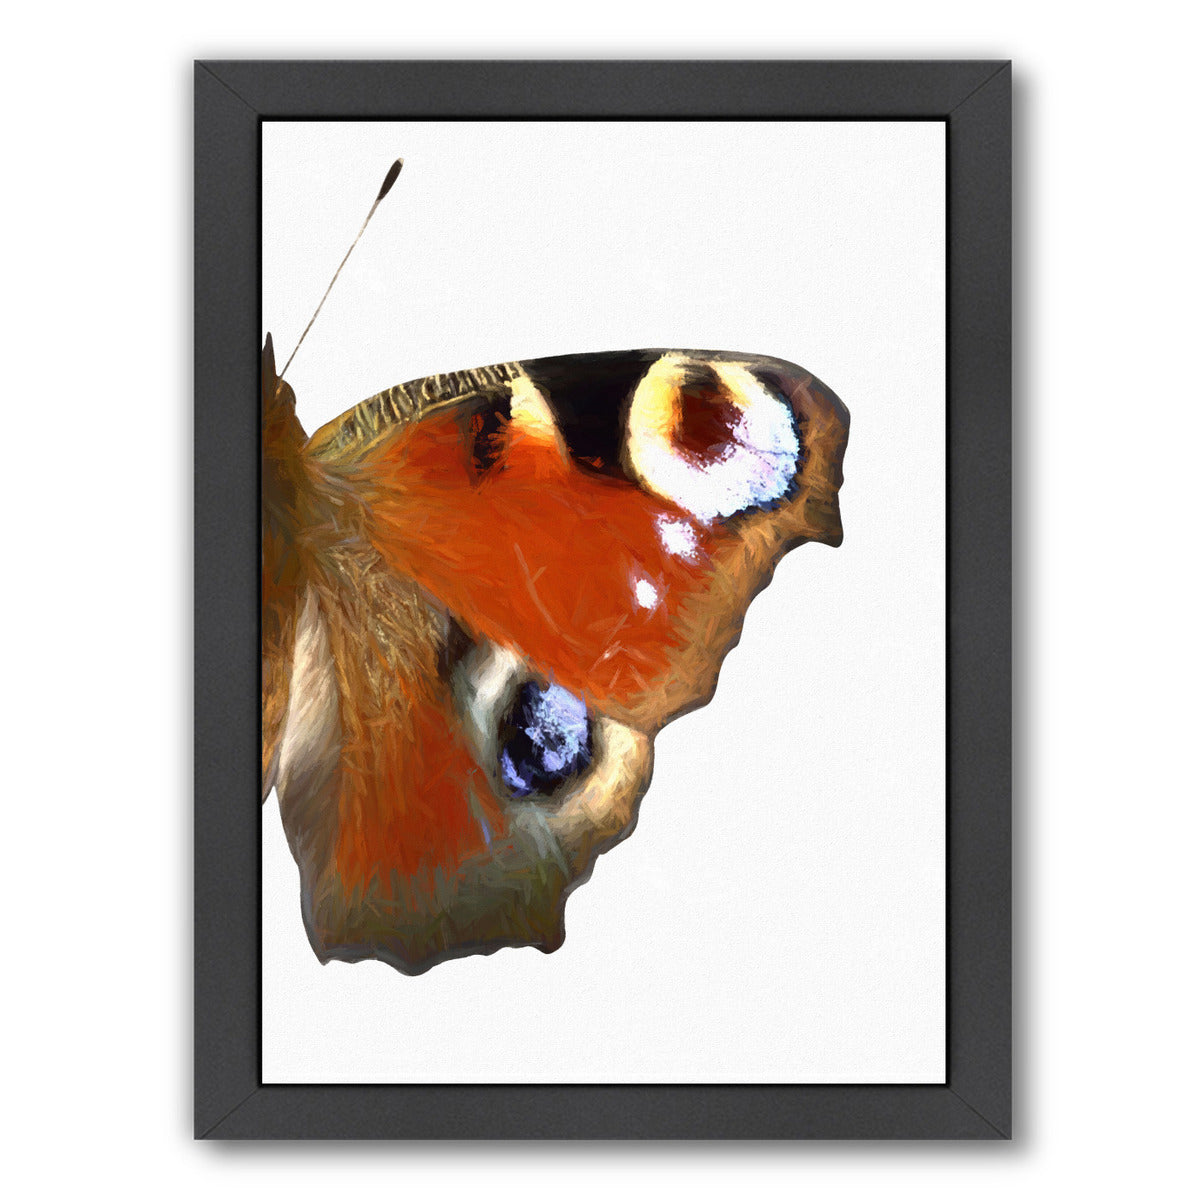 Peaock Butterfly Wing Ii By Chaos & Wonder Design - Black Framed Print - Wall Art - Americanflat